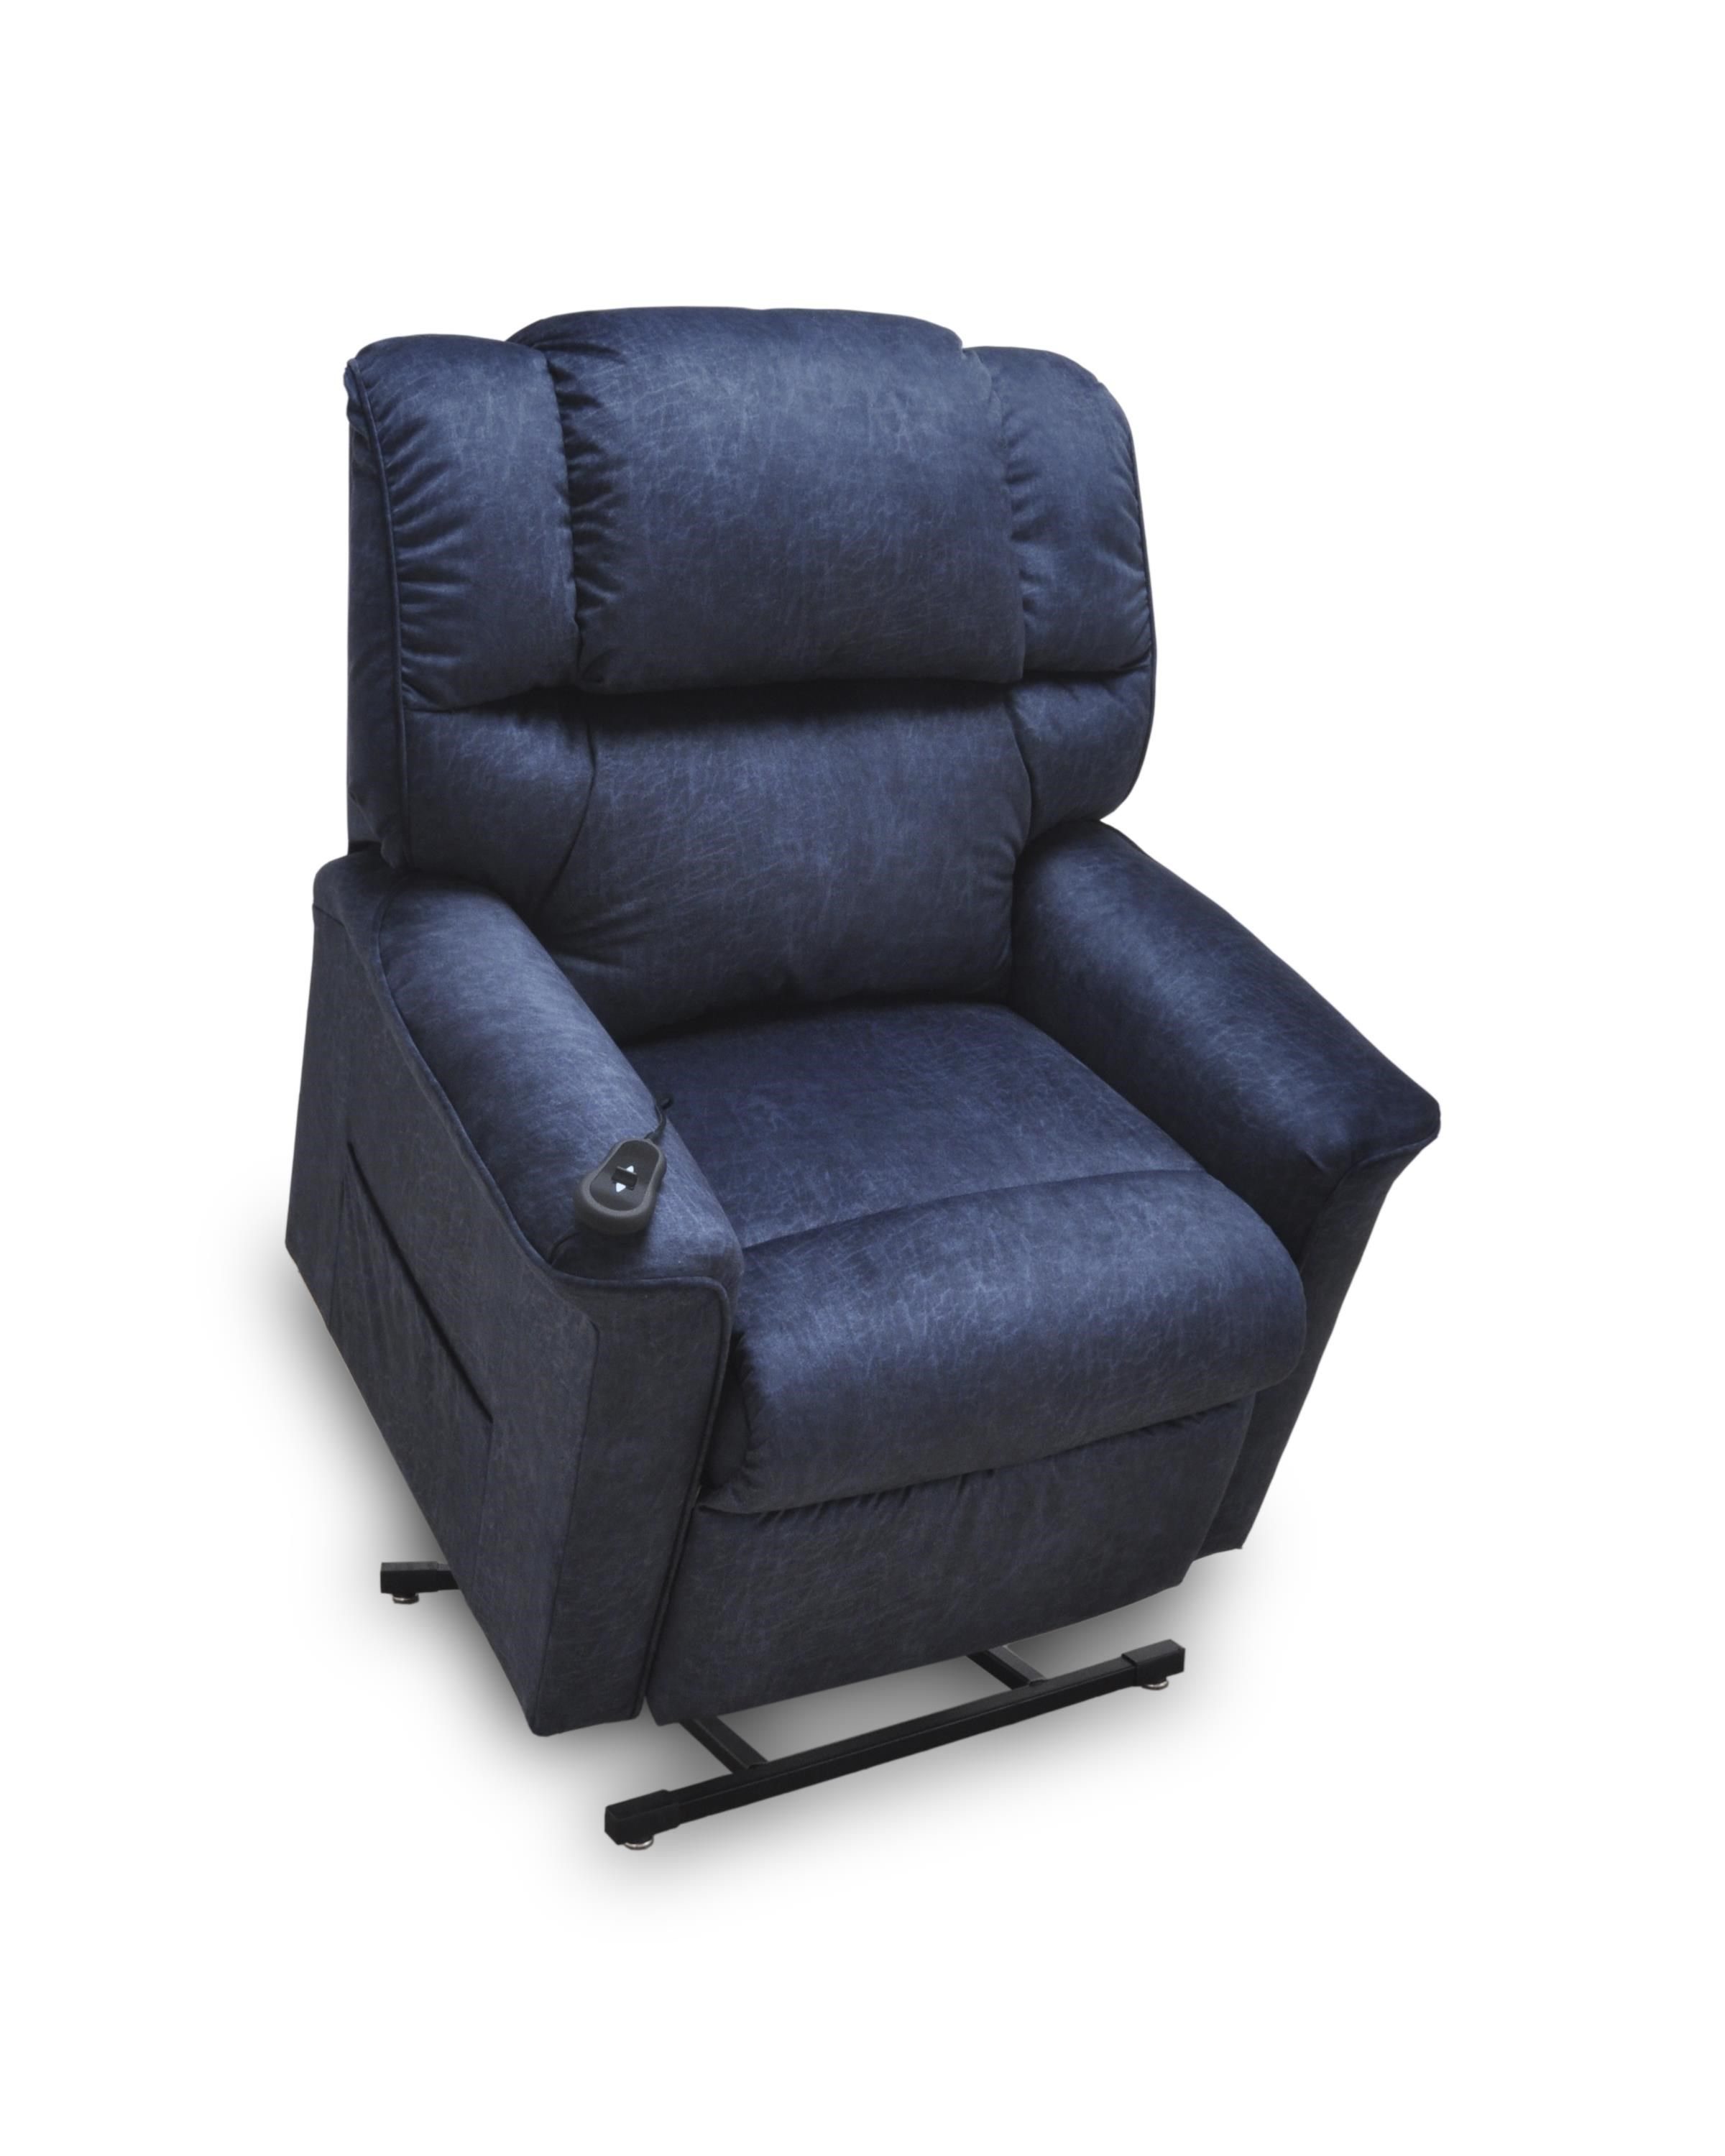 Franklin Lift and Power Recliners Oscar Lift Chair - Great American Home Store - Lift Recliner  sc 1 st  Great American Home Store : recliners with lift - islam-shia.org